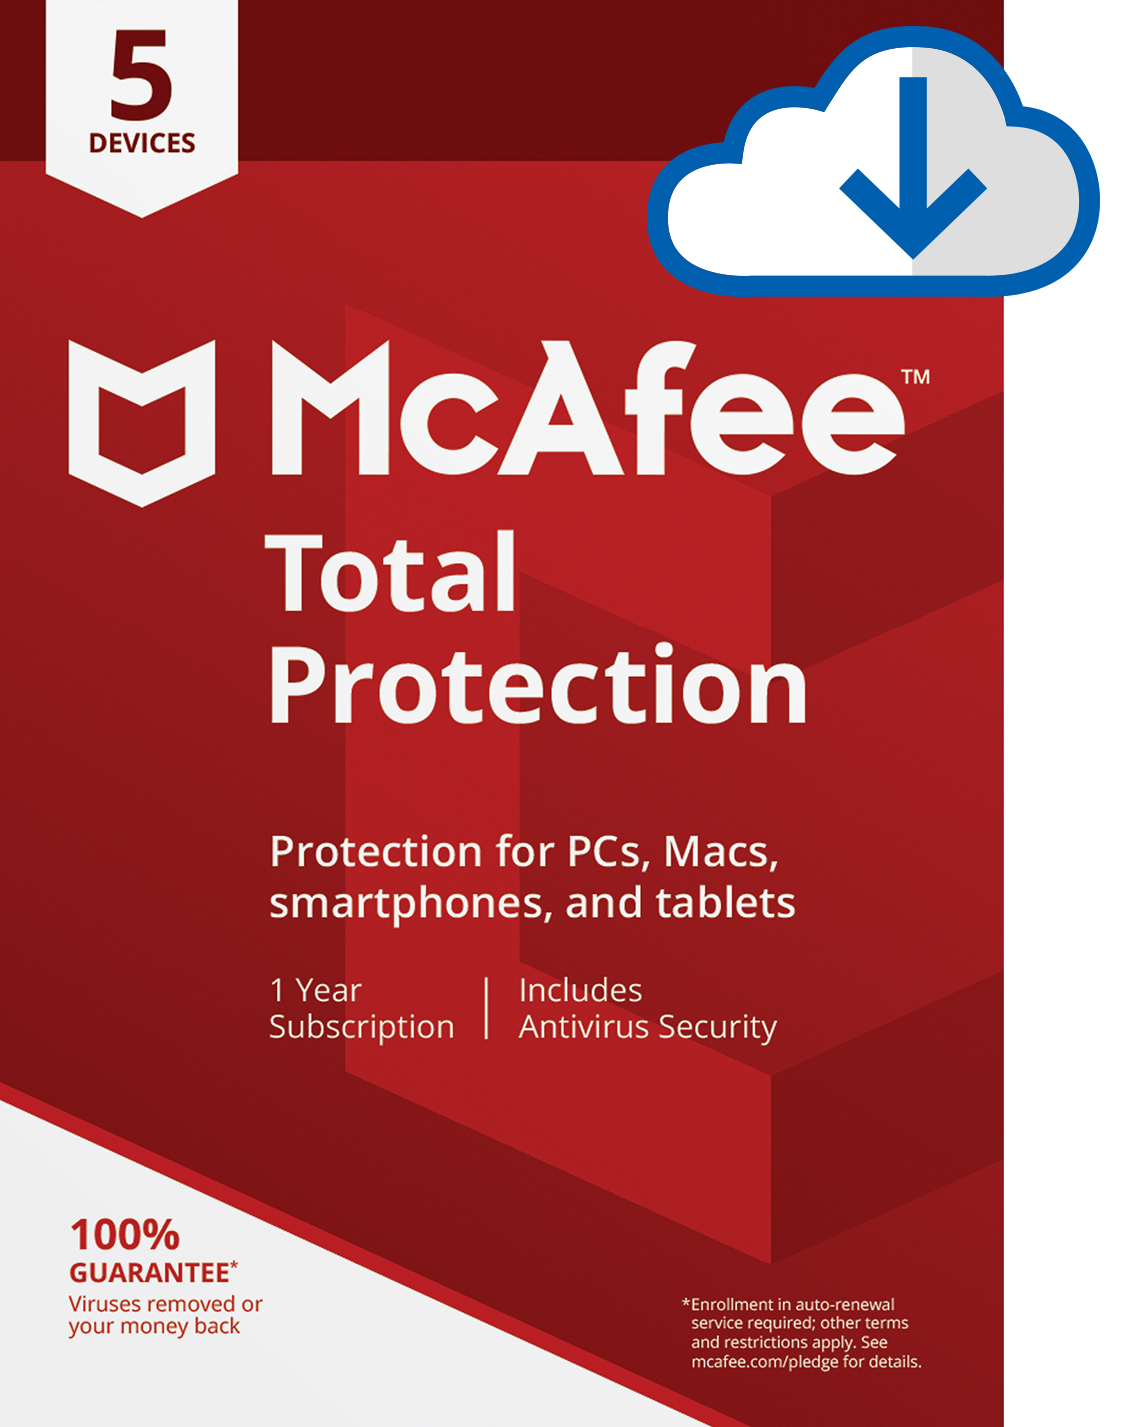 McAfee 2018 Total Protection Devices